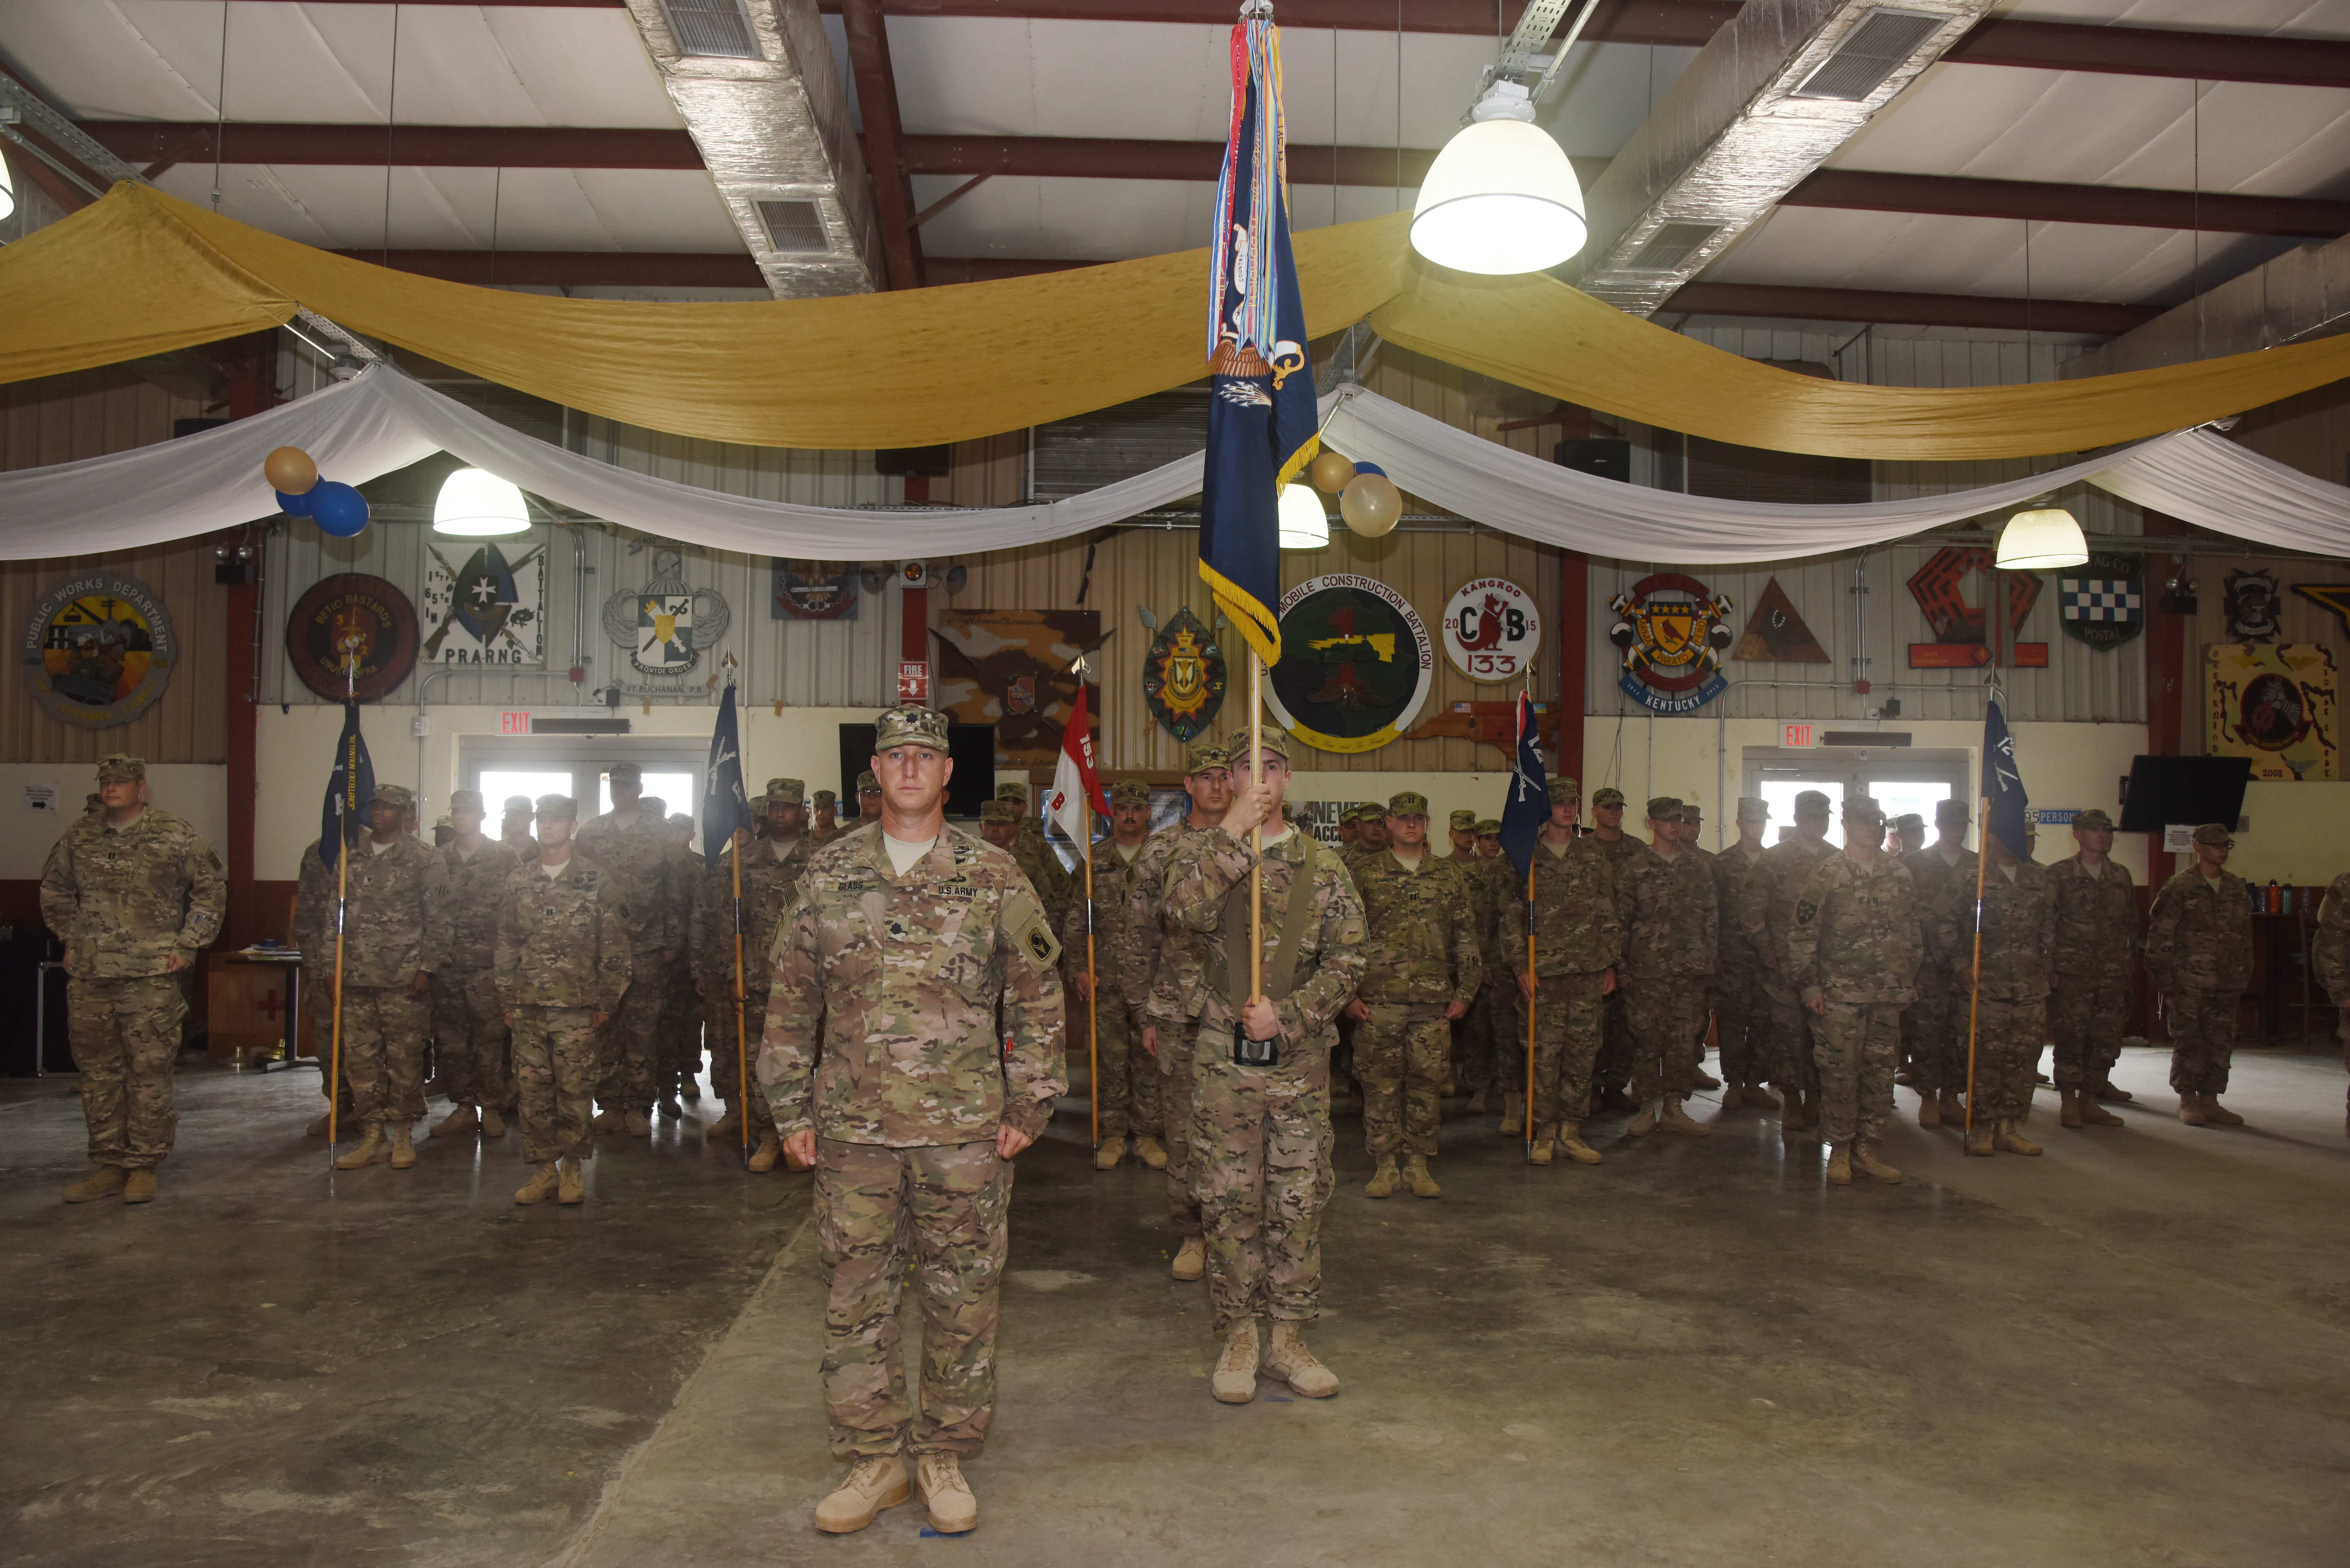 The 2nd Battalion. 124th Infantry Regiment soldiers stand in formation during a transfer of authority ceremony at Camp Lemonnier, Djibouti, Sept. 24, 2015.  The soldiers will take over the responsibilities and tasks that the 1st BN, 77th Armor Regiment performed during their time assigned to the Combined Joint Task Force-Horn of Africa.  (U.S. Air Force photo by Staff Sgt. Maria Bowman)